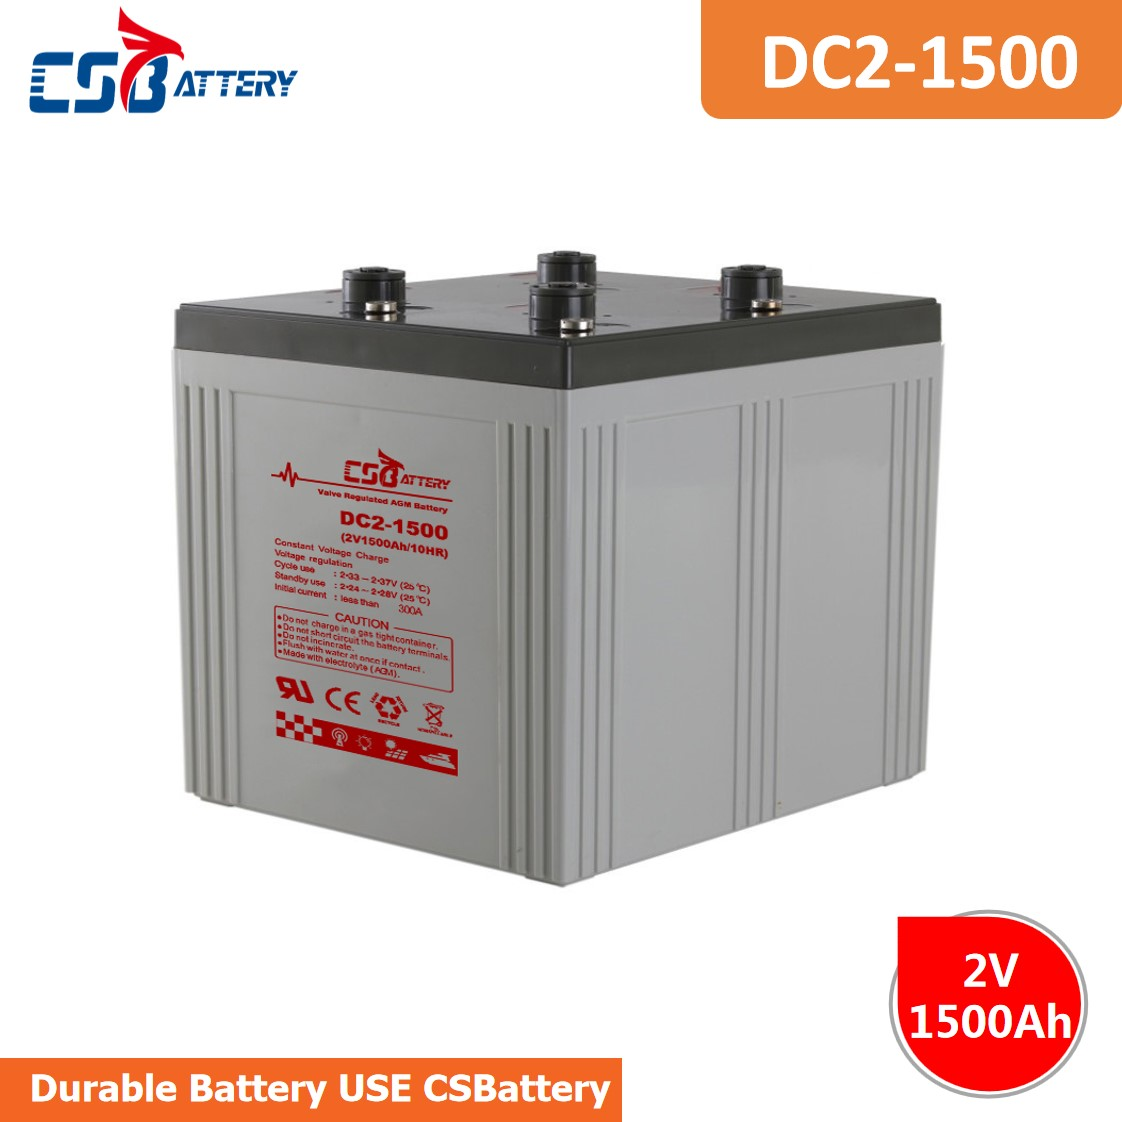 CSBattery 2V 1500Ah Solar-storage Lead acid Battery for water-pump/Electric-Vehicles/submersible-Motors/Electric-Power